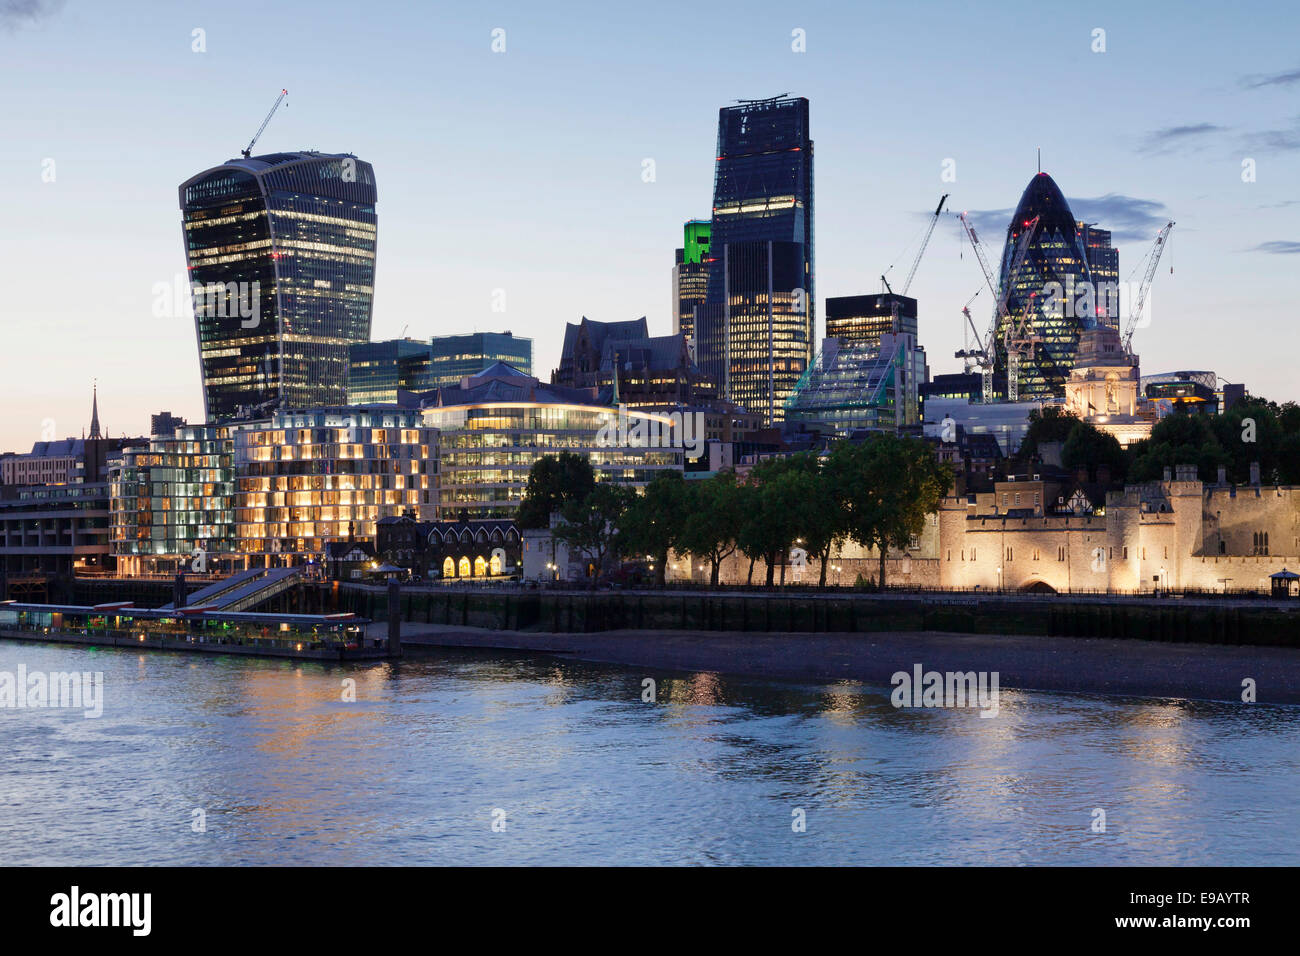 Tower of London on the River Thames, Walkie Talkie high-rise building, Leadenhall high-rise building, 30 St Mary - Stock Image